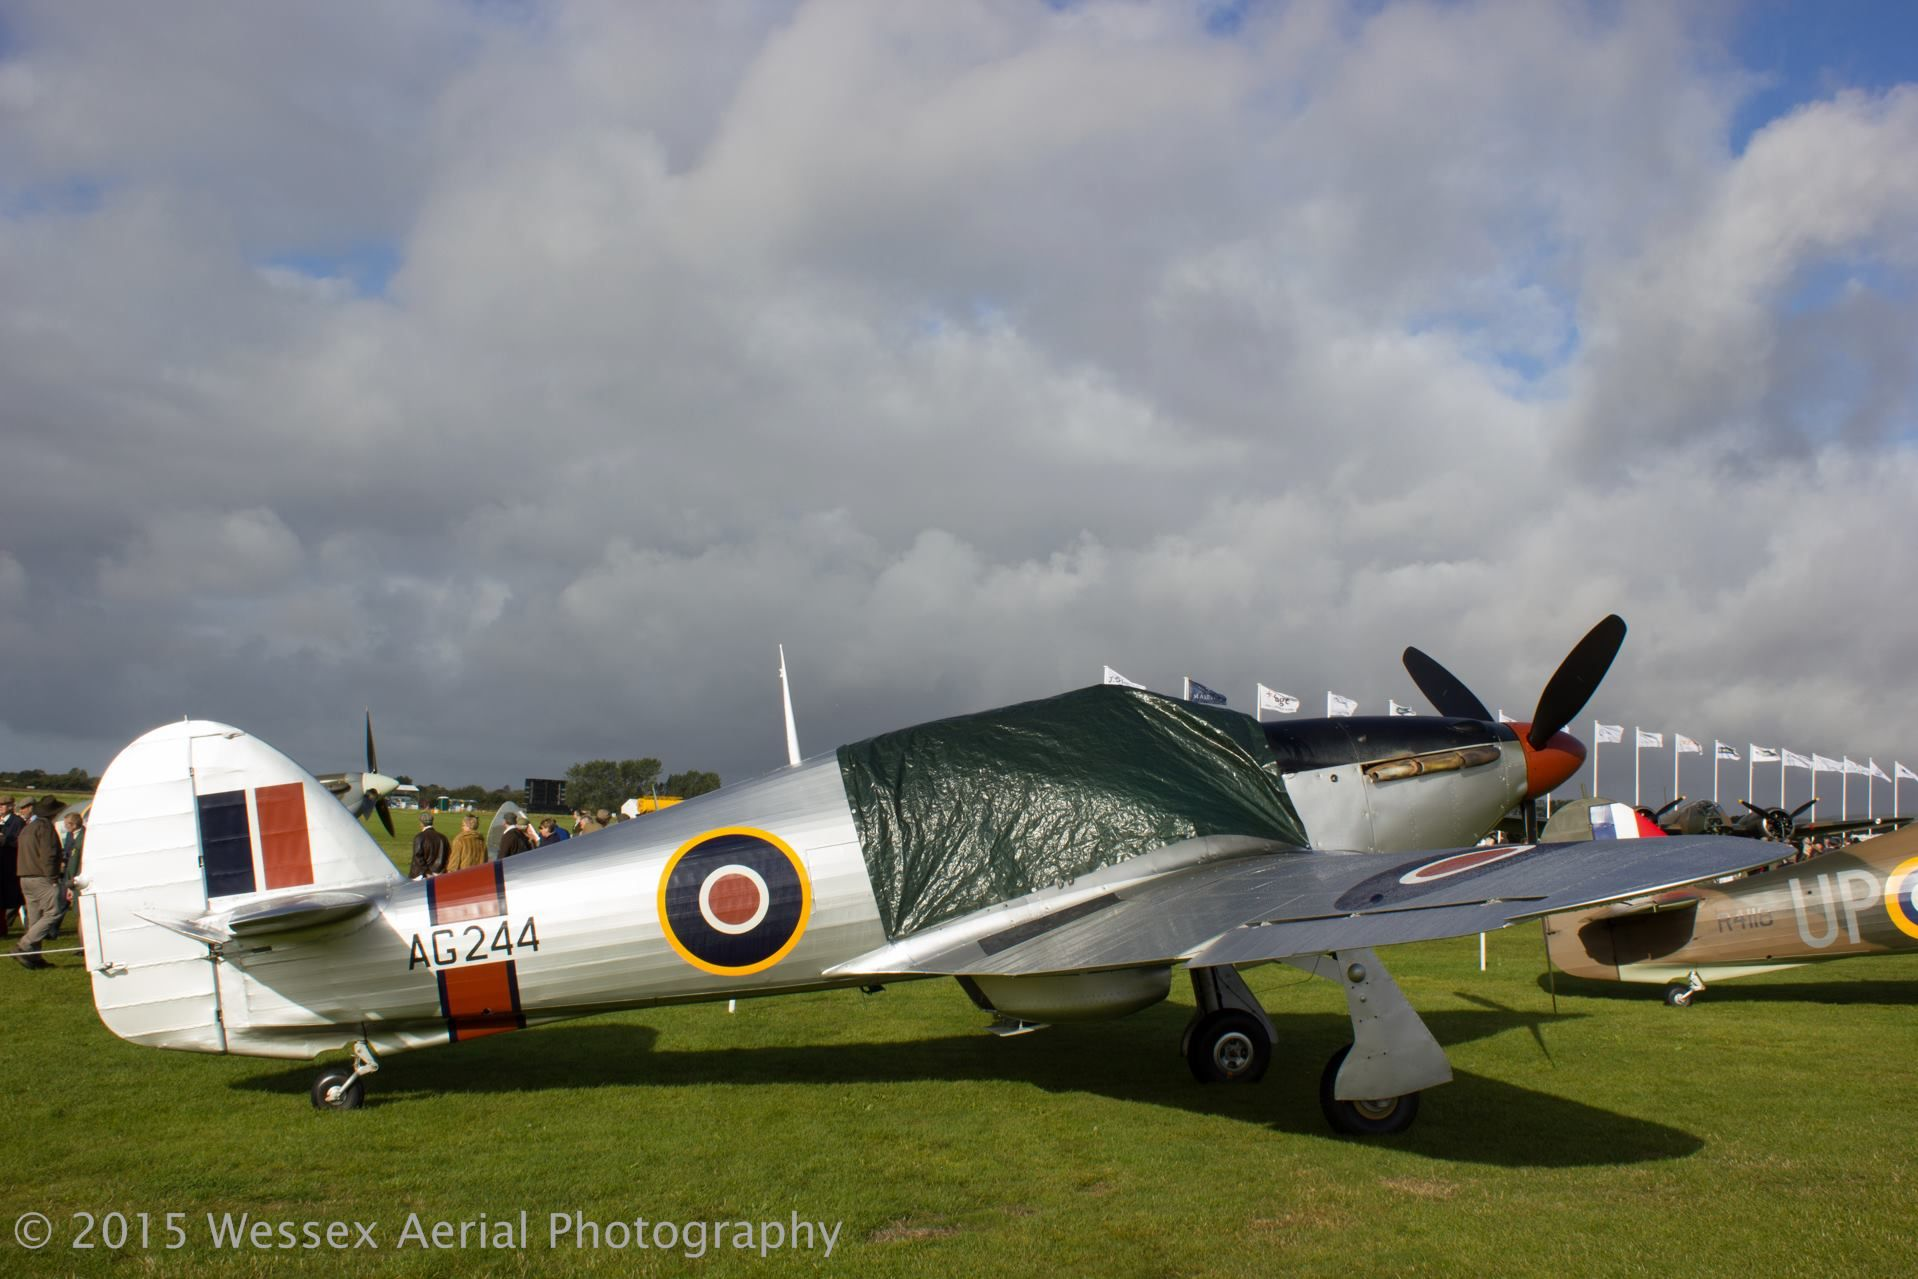 Warbirds Spitfires Hurricanes Seafire Blenheim at